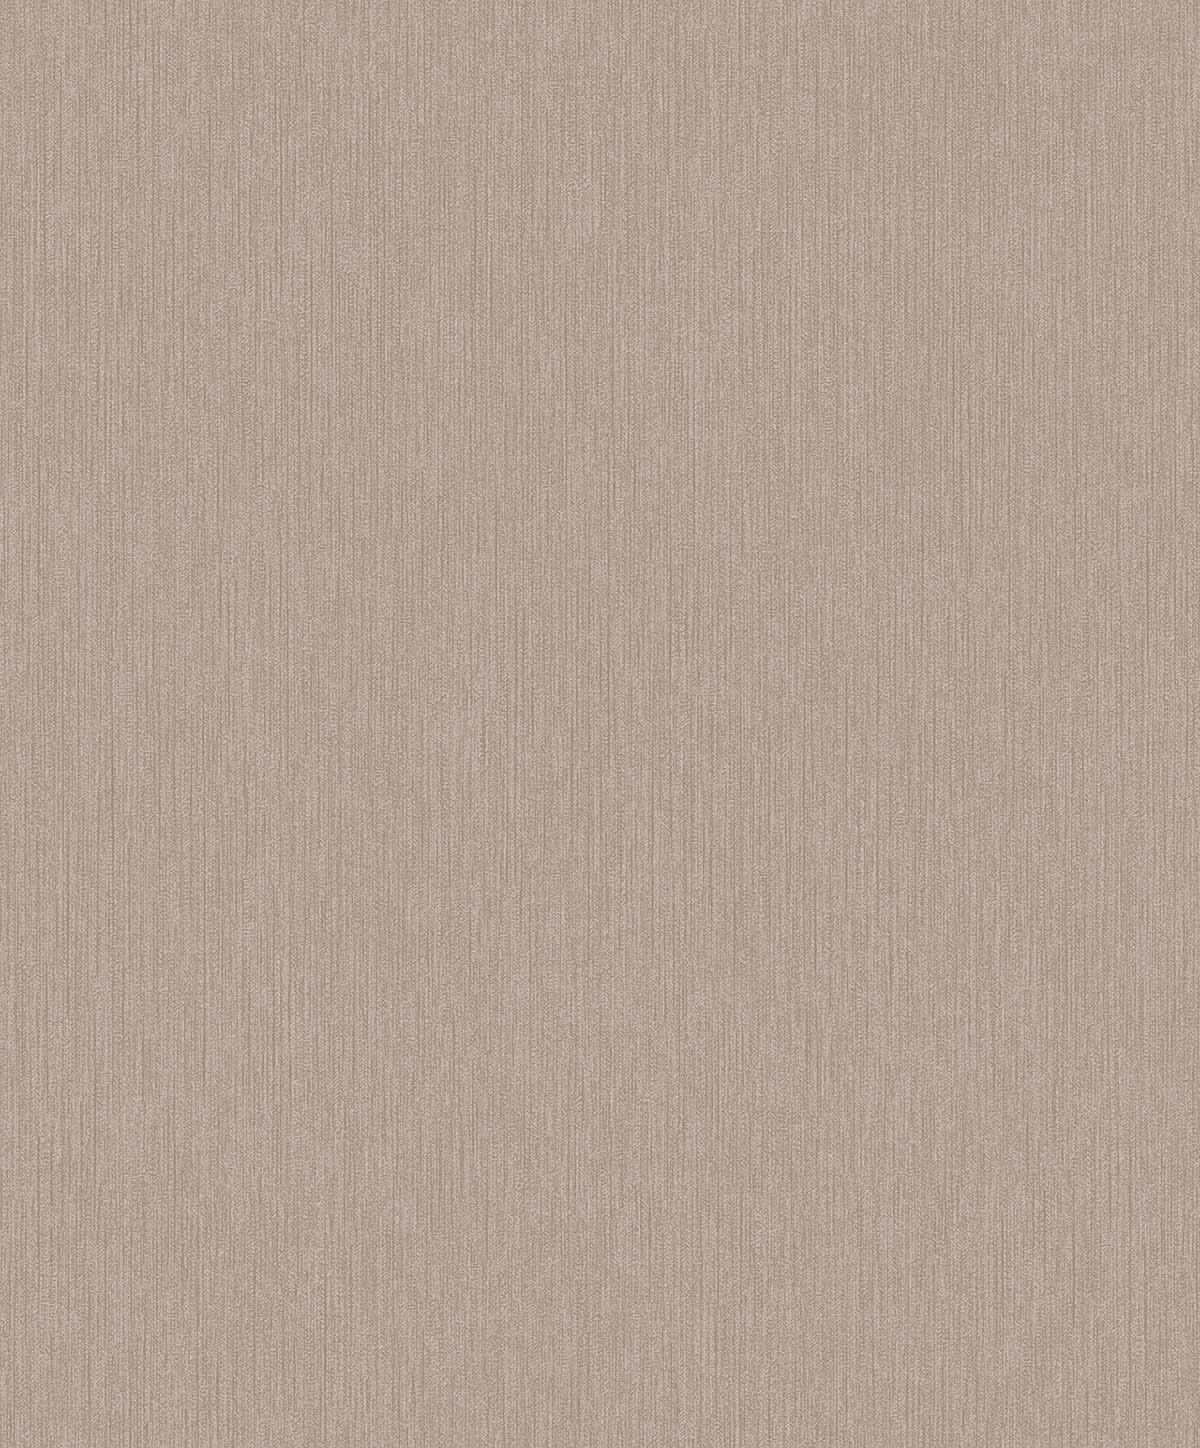 REGENCY SILK PEWTER A PV00211